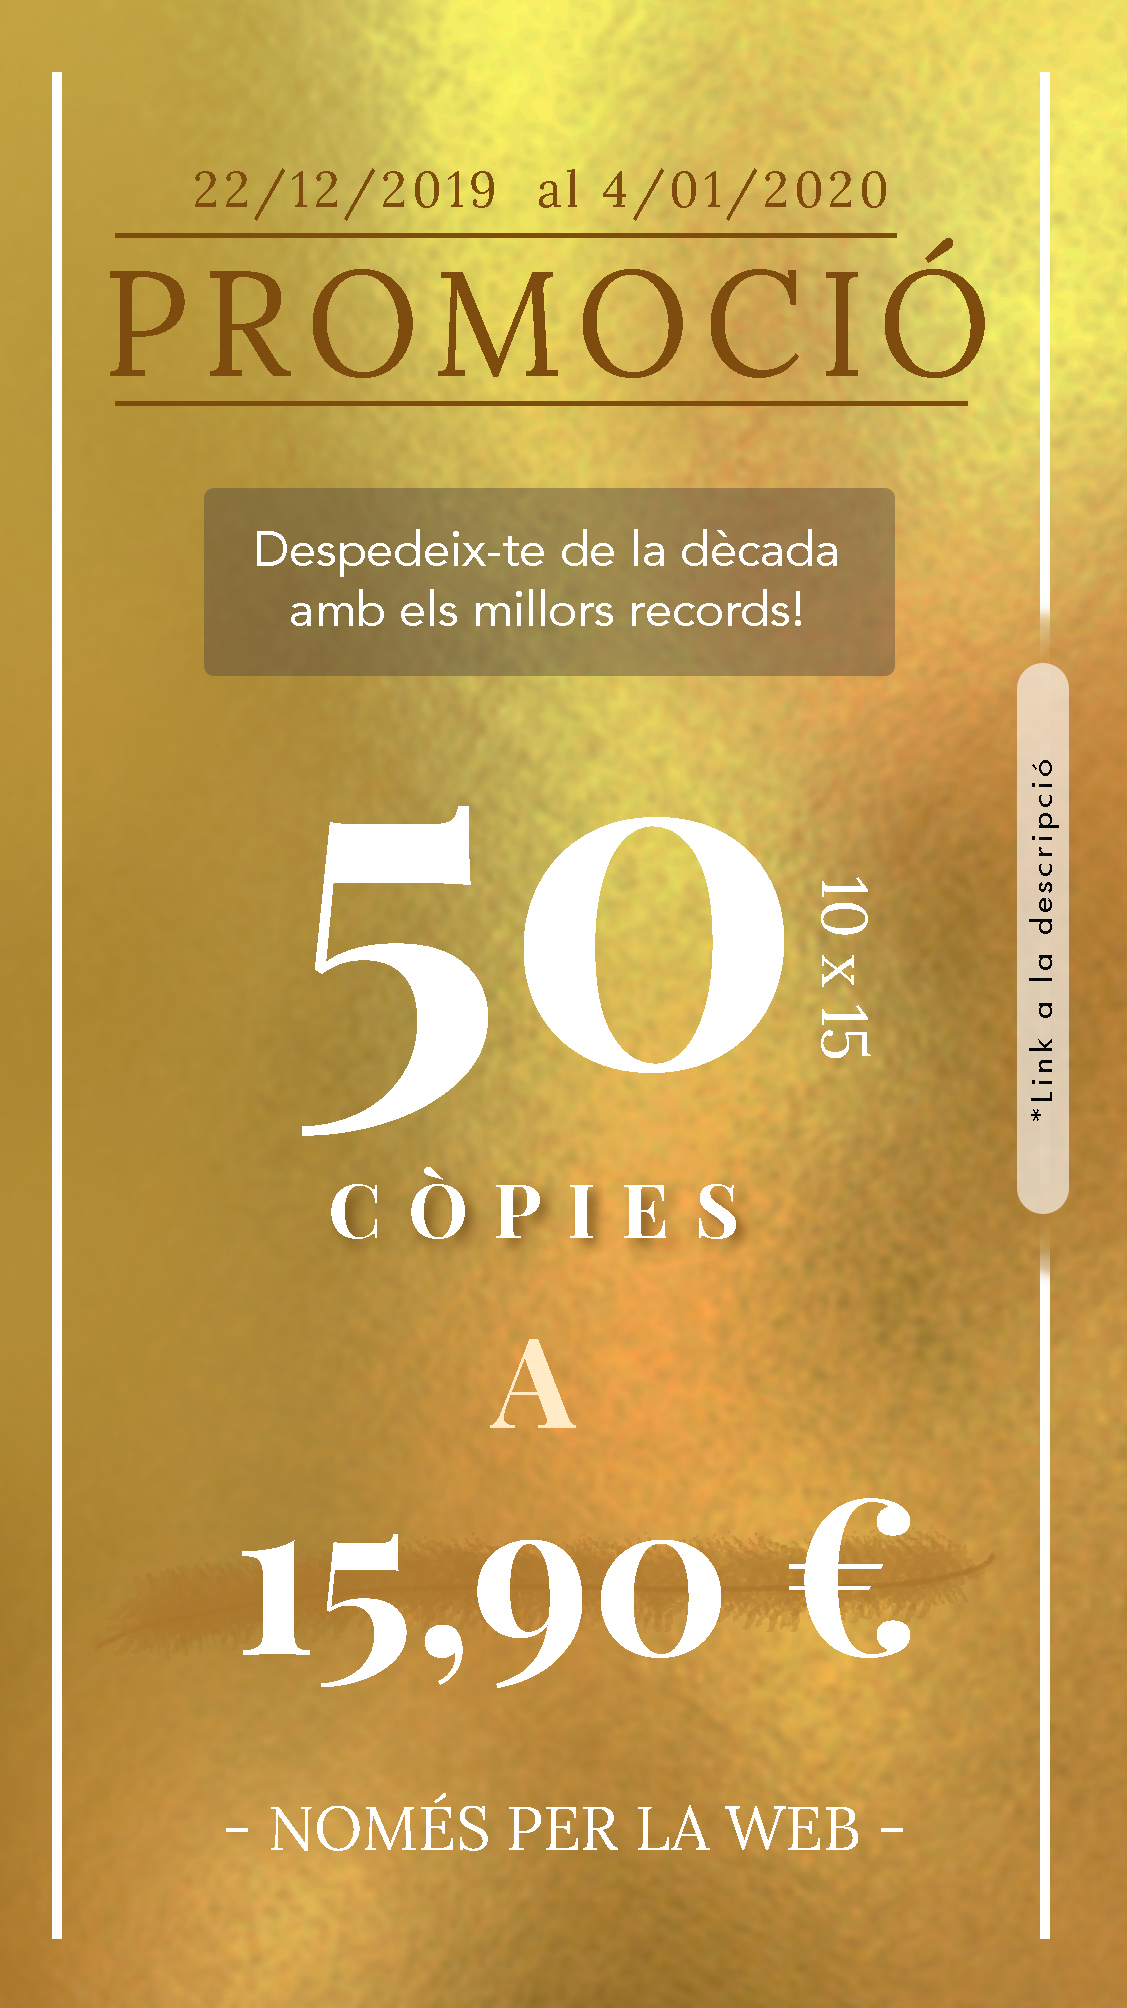 Promo Cap d'Any 50 còpies